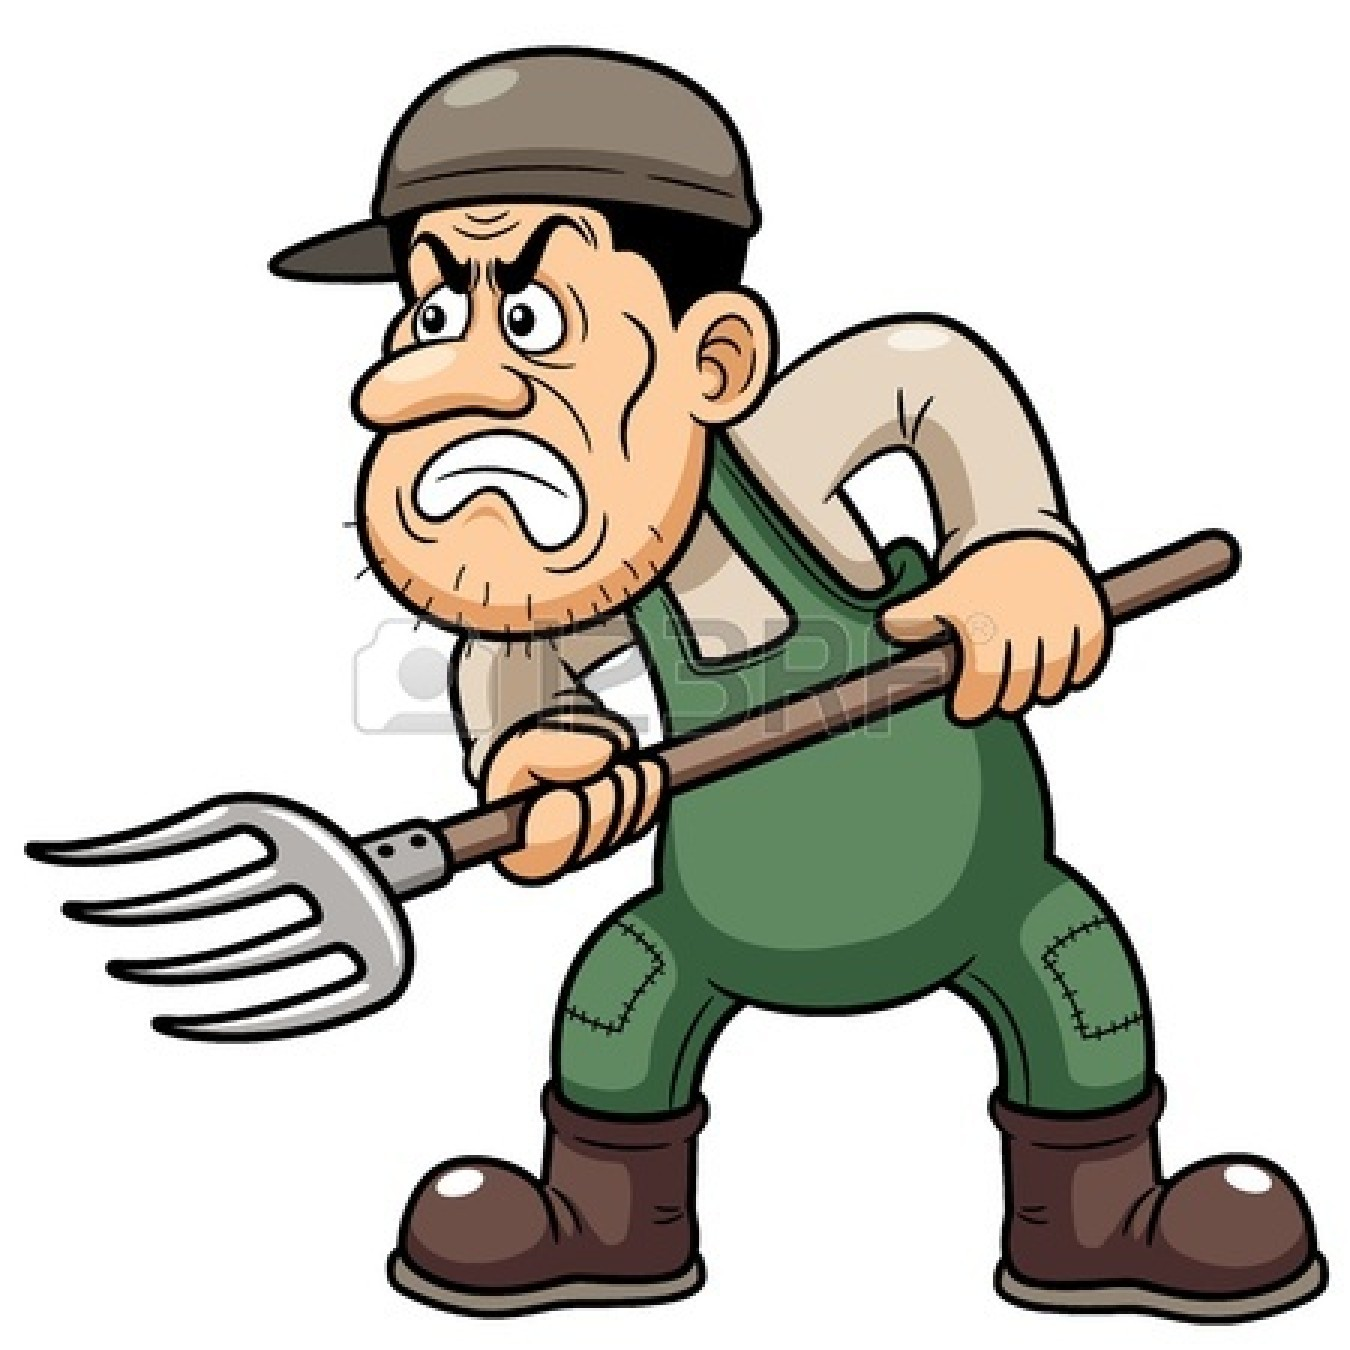 Angry Farmer Cartoon Stock Photos, Images, & Pictures - 20 ...